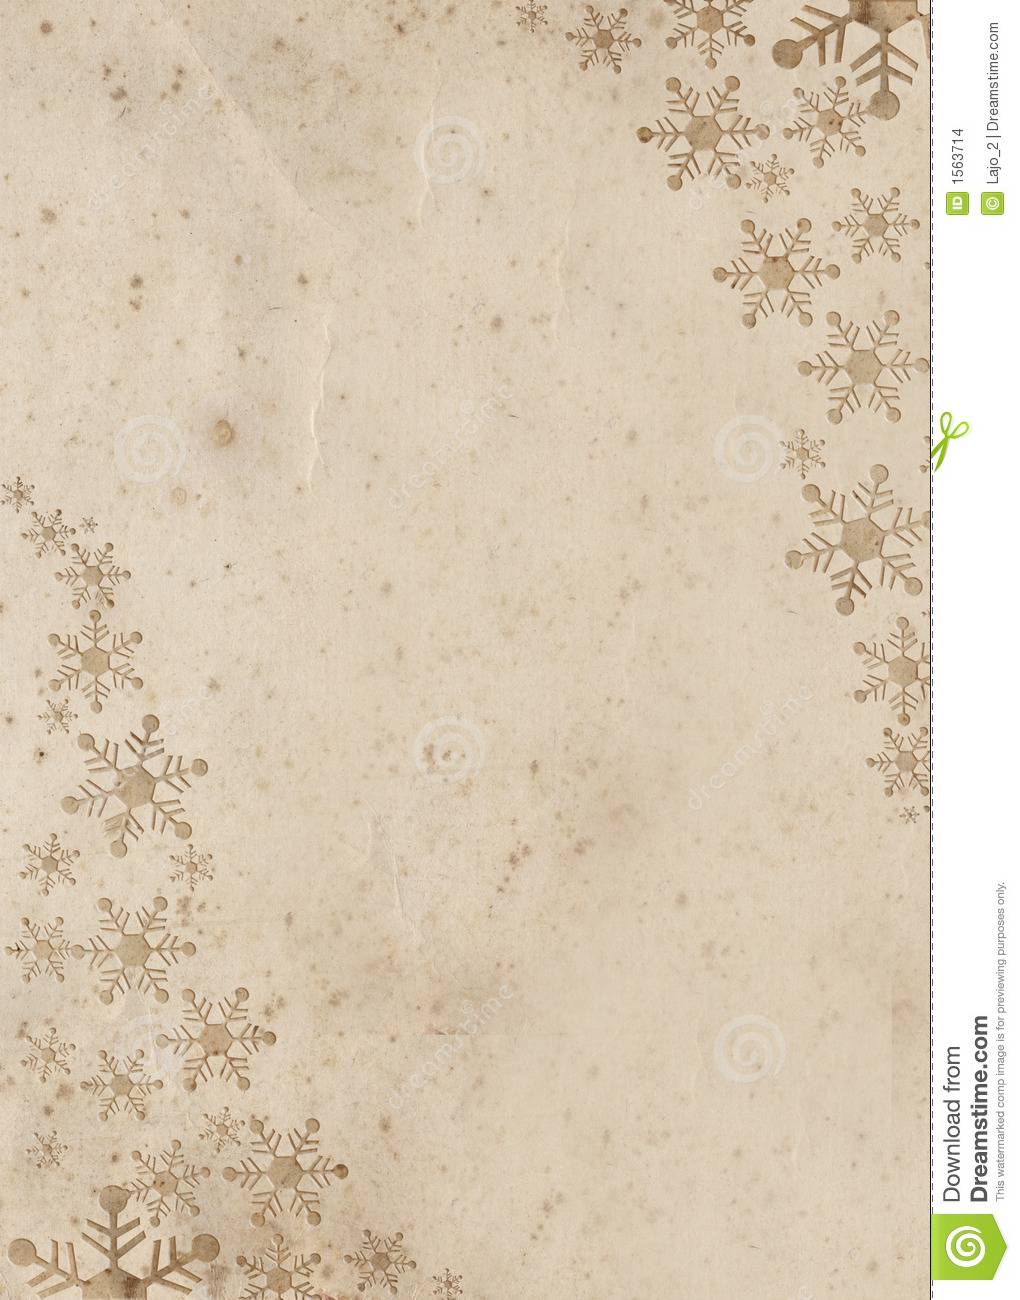 Decorated Grunge Paper For Christmas Card Stock Illustration ...